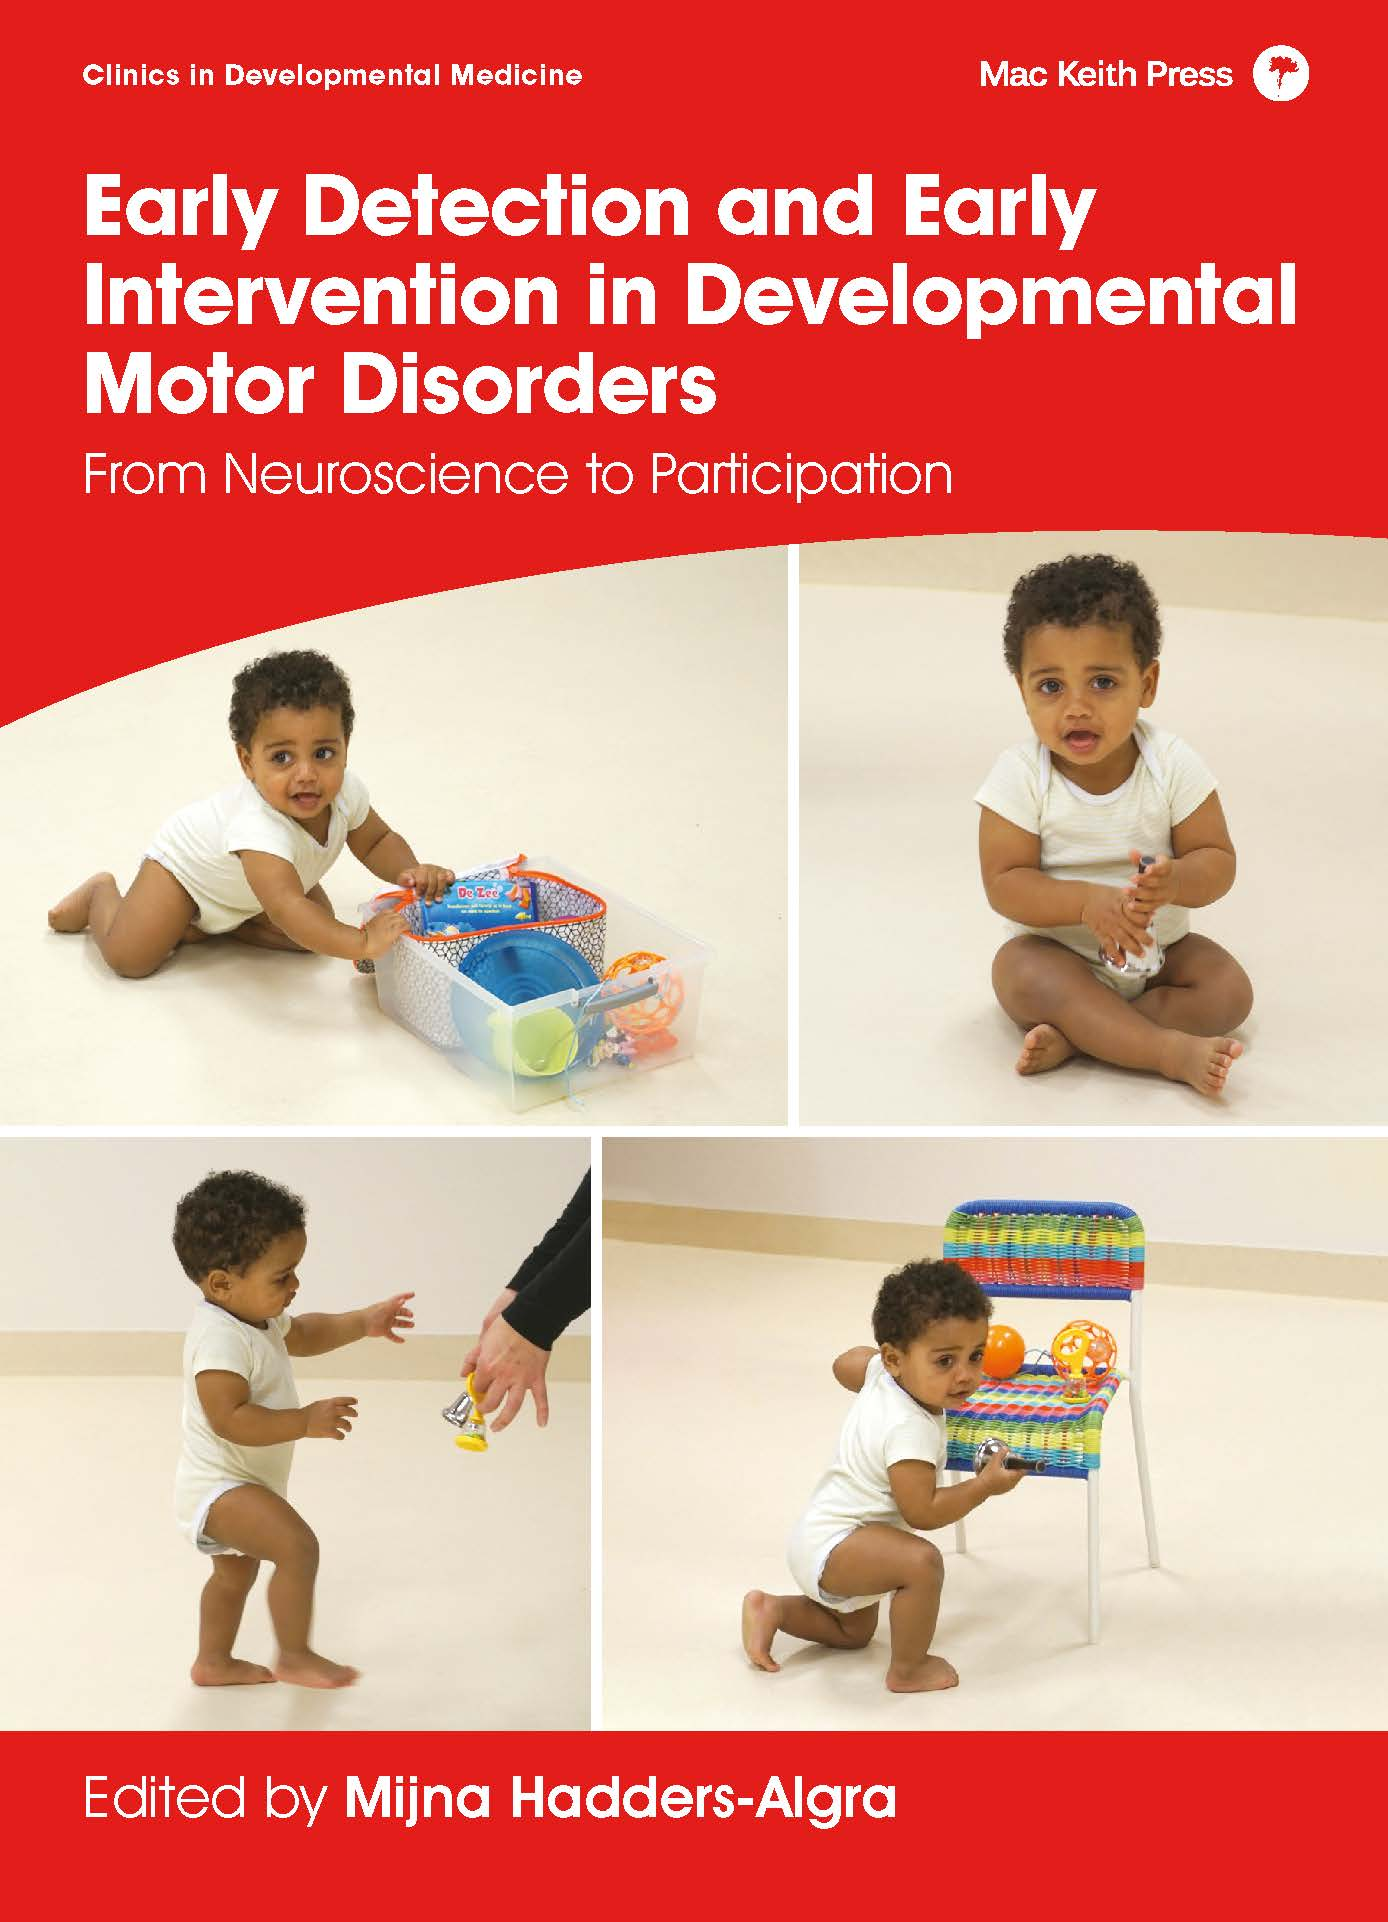 Early Detection and Early Hadders-Algra Intervention in Developmental Motor Disorder